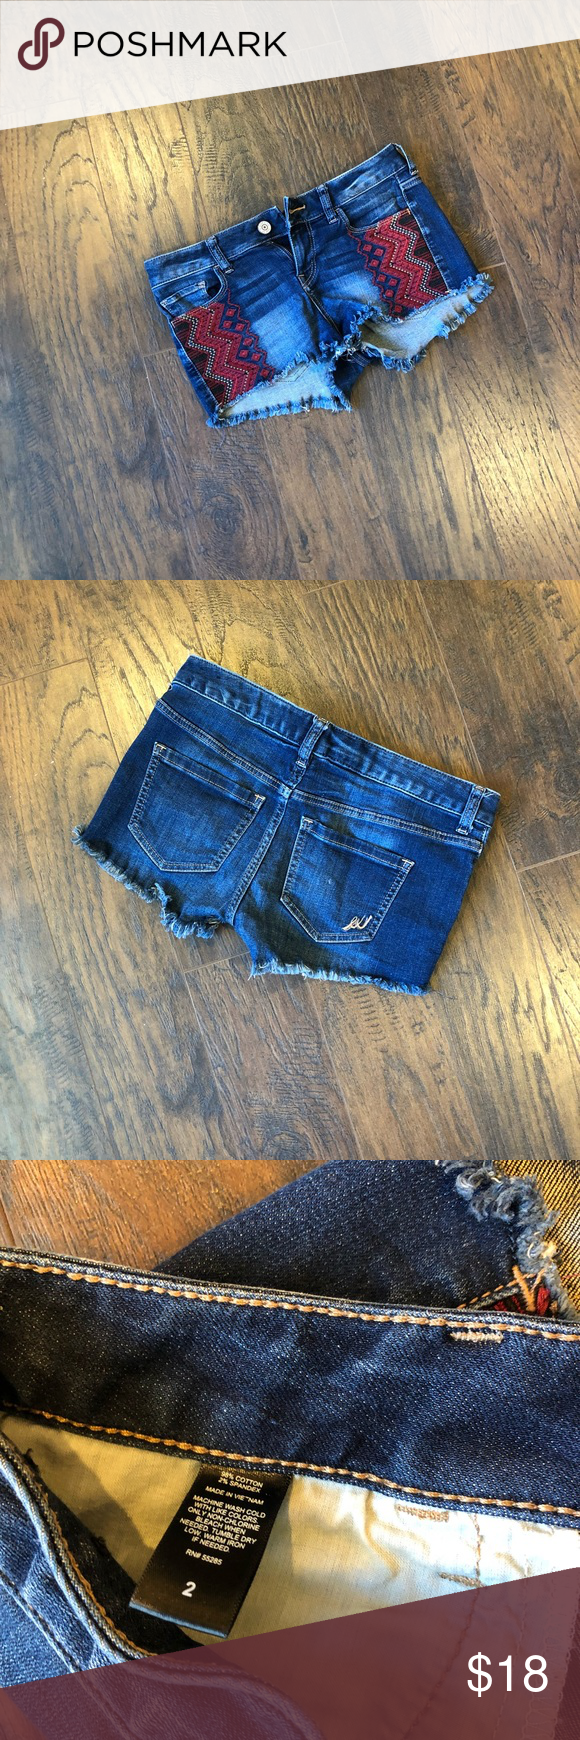 """Express denim cutoff shorts These cutoff shorts feature tribal print design on both sides Approx 8"""" in length in front and 11"""" in length in back Used but in good condition Express Shorts Jean Shorts #denimcutoffshorts Express denim cutoff shorts These cutoff shorts feature tribal print design on both sides Approx 8"""" in length in front and 11"""" in length in back Used but in good condition Express Shorts Jean Shorts #denimcutoffshorts Express denim cutoff shorts These cutoff shorts feature #denimcutoffshorts"""